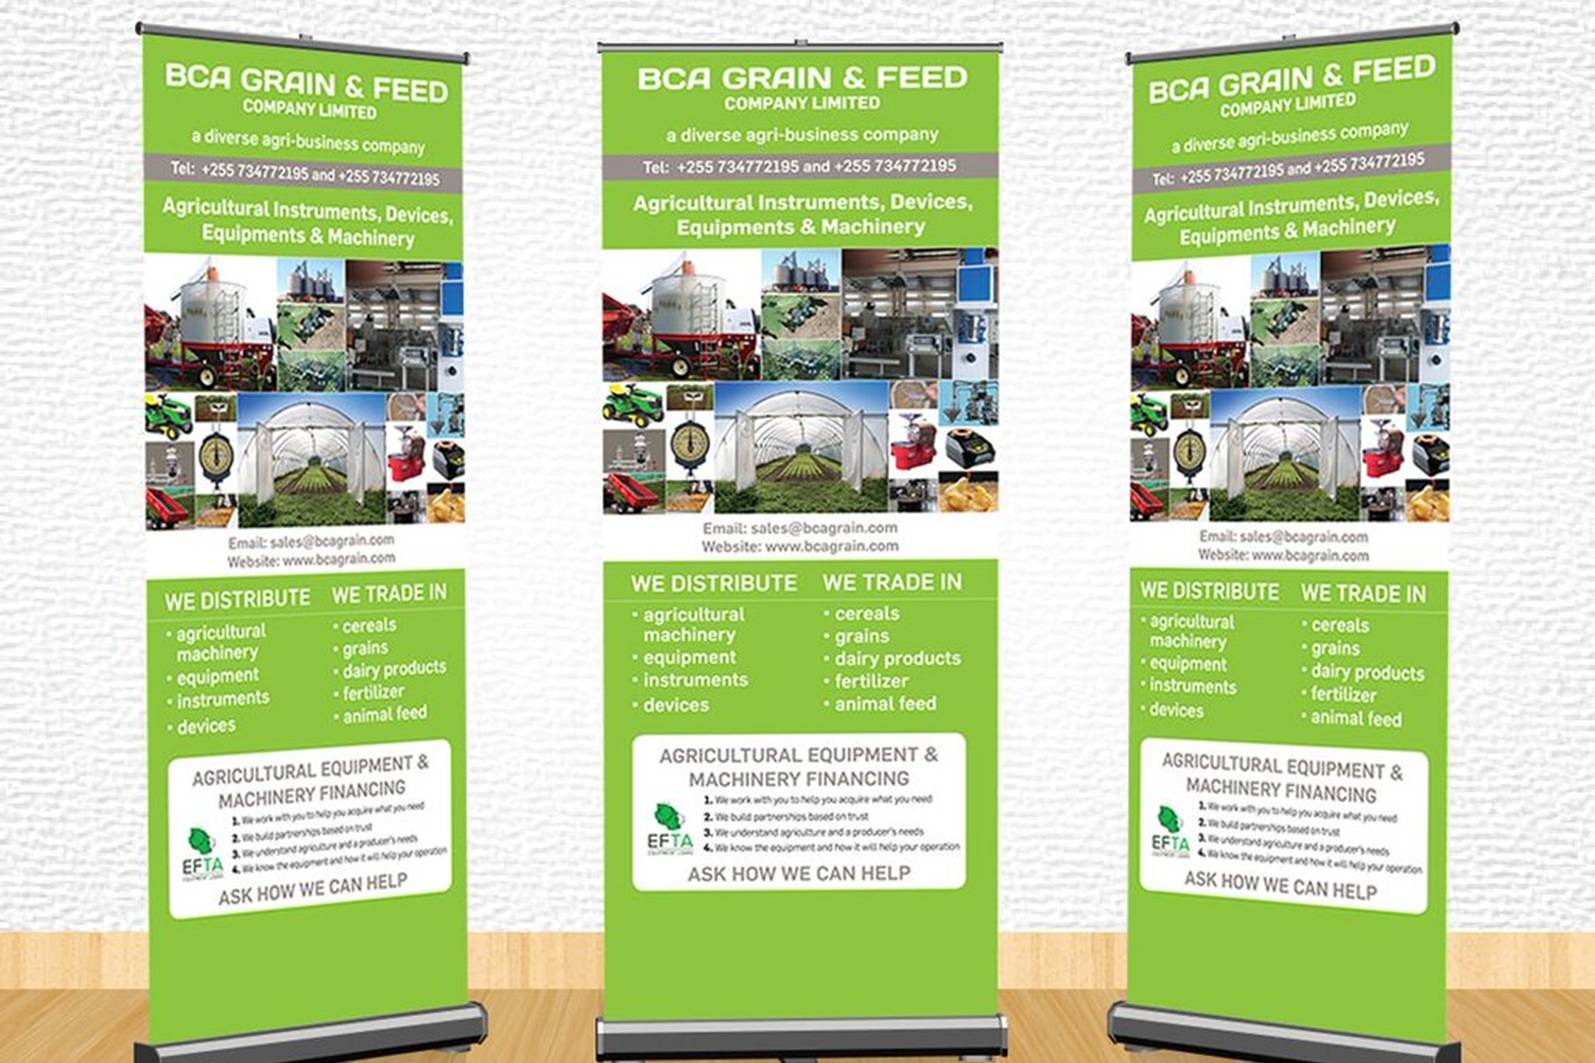 three large roll-up banners